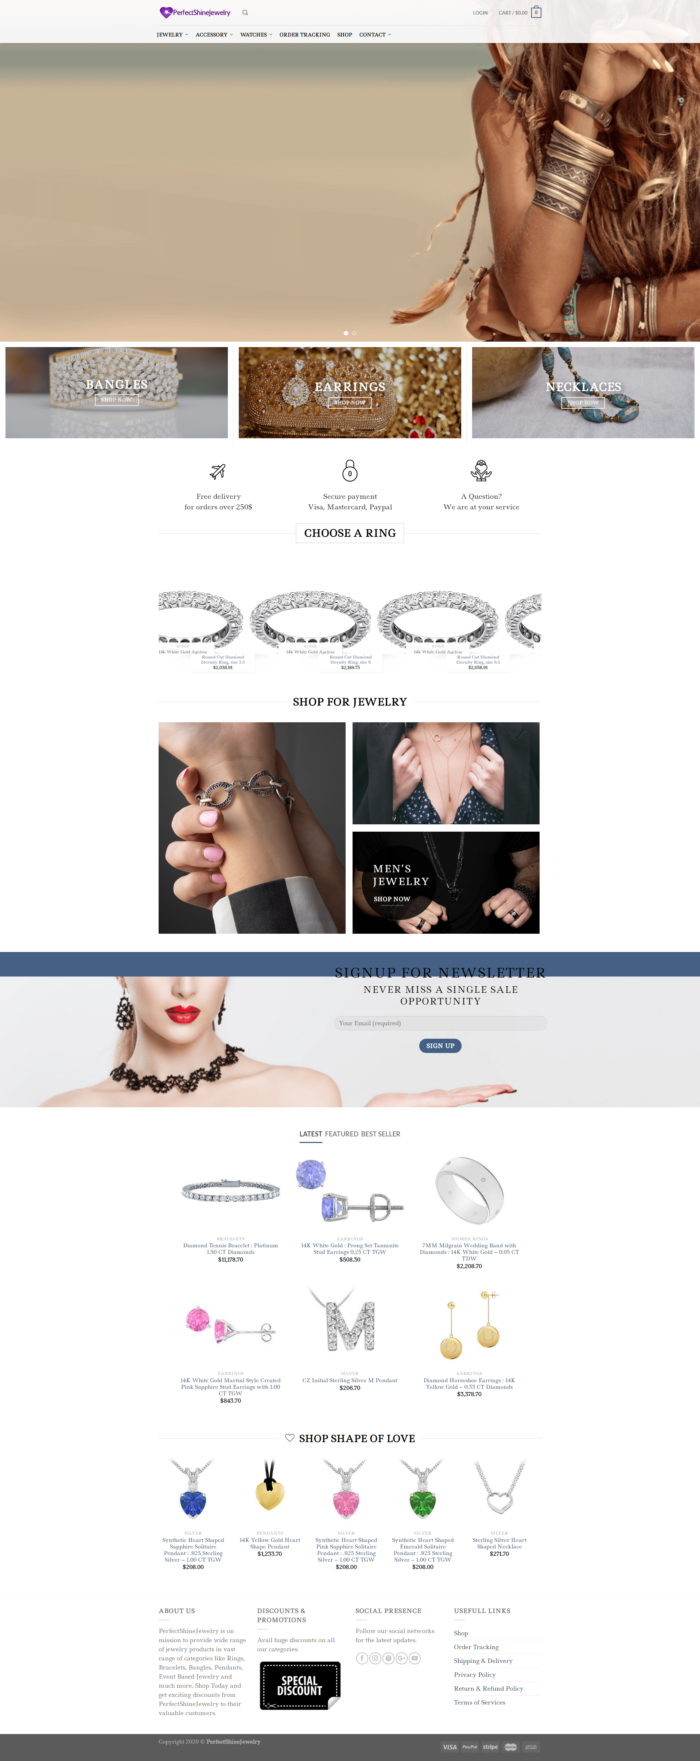 PerfectShineJewelry – Latest Jewelry Collection